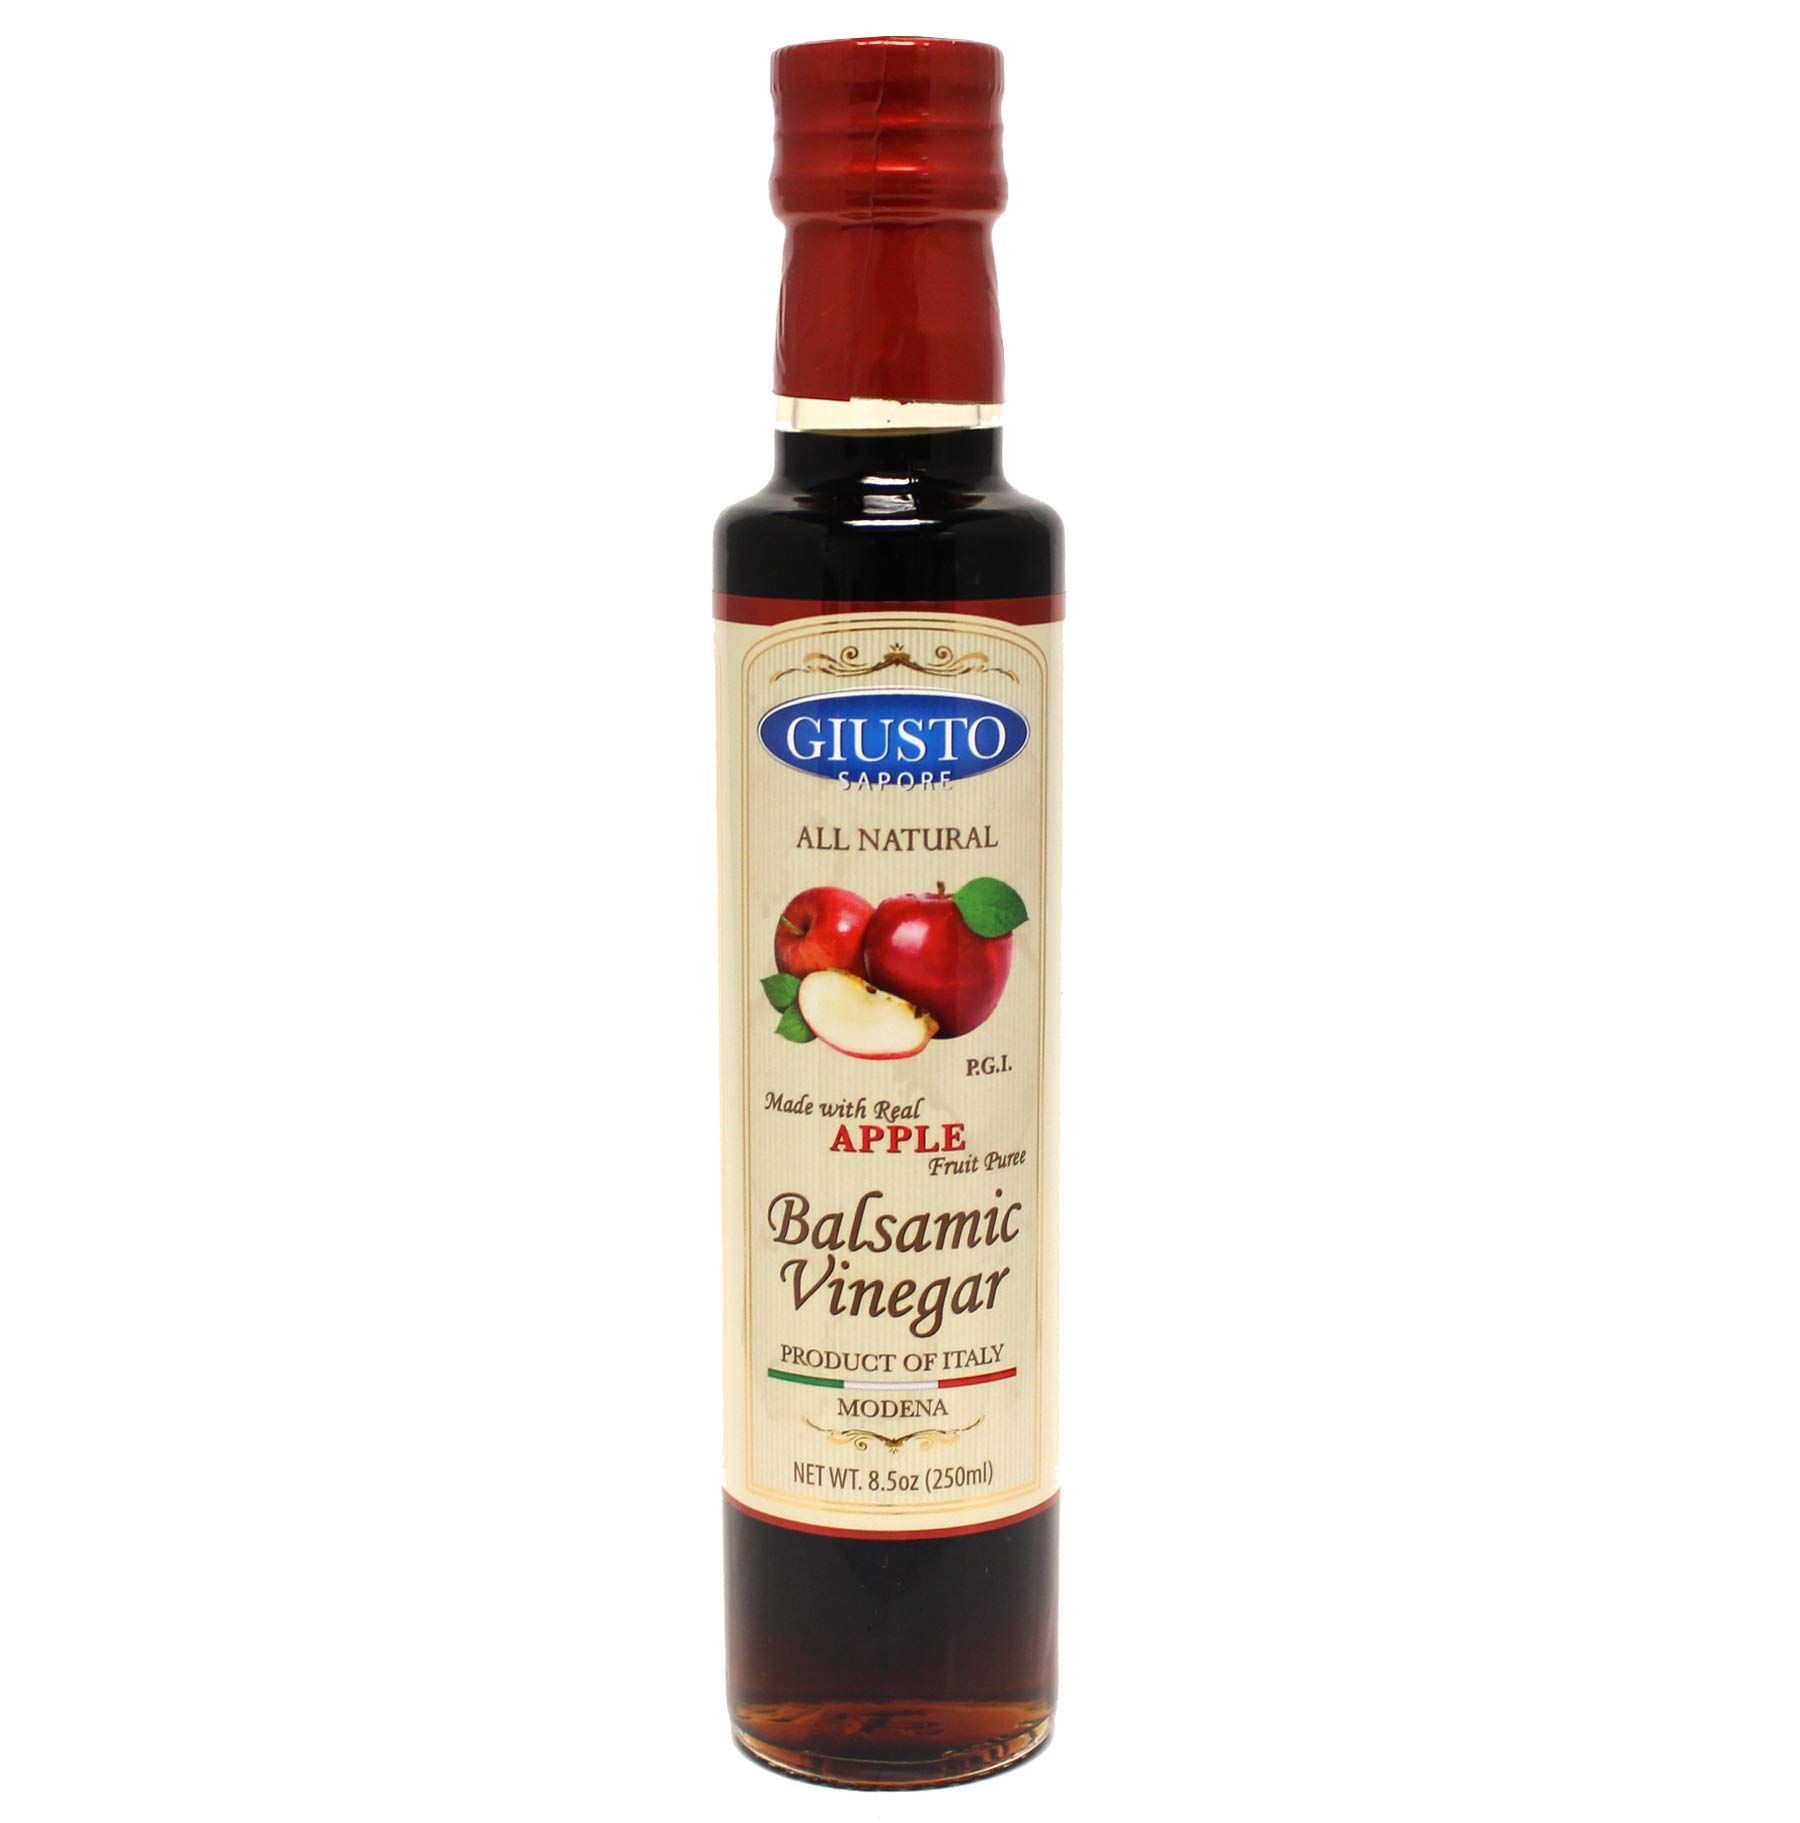 Giusto Sapore All Natural Balsamic Vinegar of Modena P.G.I. - 8.5oz - Made with Real Fruit Puree - Imported from Italy and Family Owned 1 APPLE ITALIAN BALSAMIC VINEGAR: Whether you're looking for personalized gifts for the Italian lovers in your life or you're looking for delicious Italian apple balsamic vinegar. With these balsamic vinegars, you'll have 17 servings of premium gourmet Italian vinegar ready to go! QUALITY: This is some of the best superior quality Italian fruit infused balsamic vinegars on the market today and probably the last one you will need to ever try! Any product which is not made in the legal area of Modena, under specific European Union production regulations cannot receive the P.G.I certification. DELICIOUS TASTE: Giusto Sapore's Italian Apple Balsamic Vinegars yields a sweeter and less pungent taste as well as more aroma and flavor. Balsamic fruit vinegars blend real fruit puree with white wine vinegar and cooked grape must to create all natural condiments bursting with flavor.